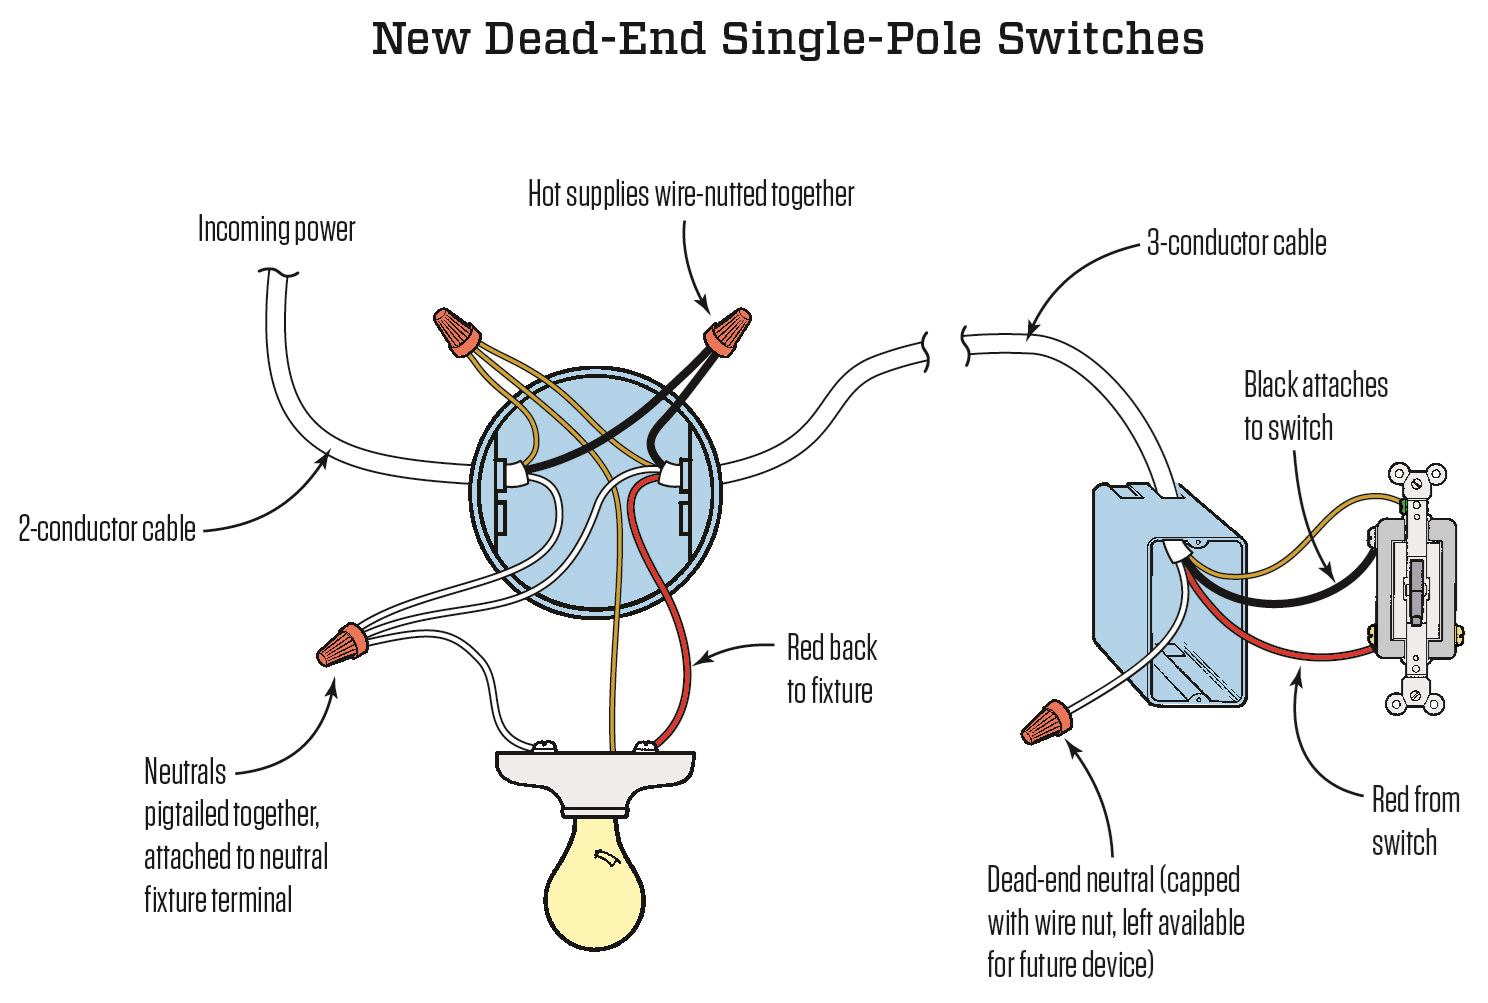 Diagram Wiring Diagrams For 2 And 3 Way Switches Full Version Hd Quality Way Switches Bbewiring Bhcase It